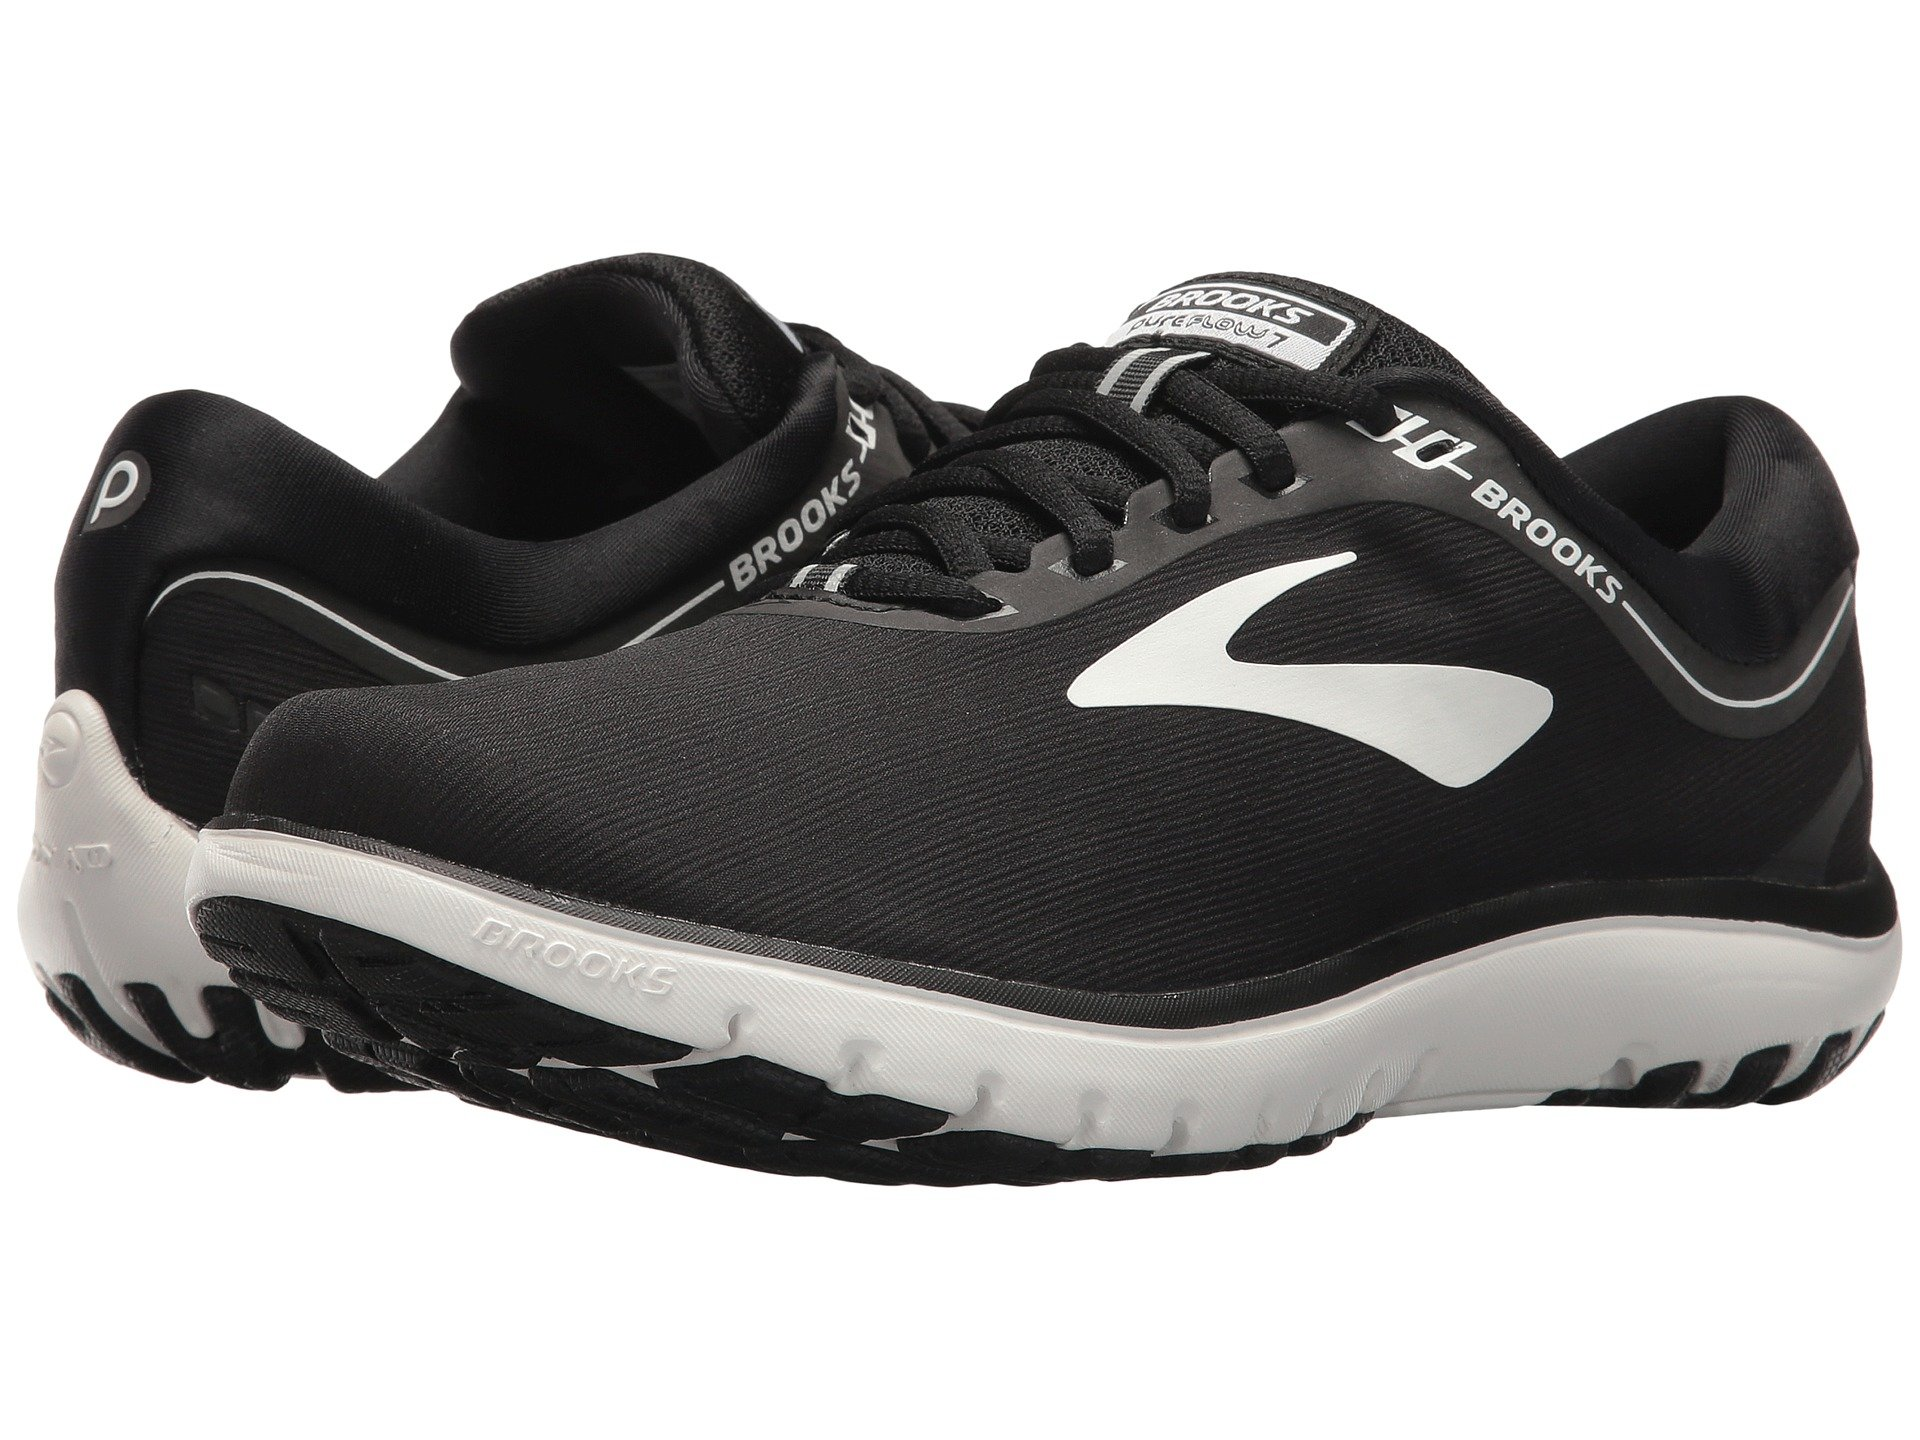 c9e9ce24ae0 Women s Brooks Latest Styles + FREE SHIPPING